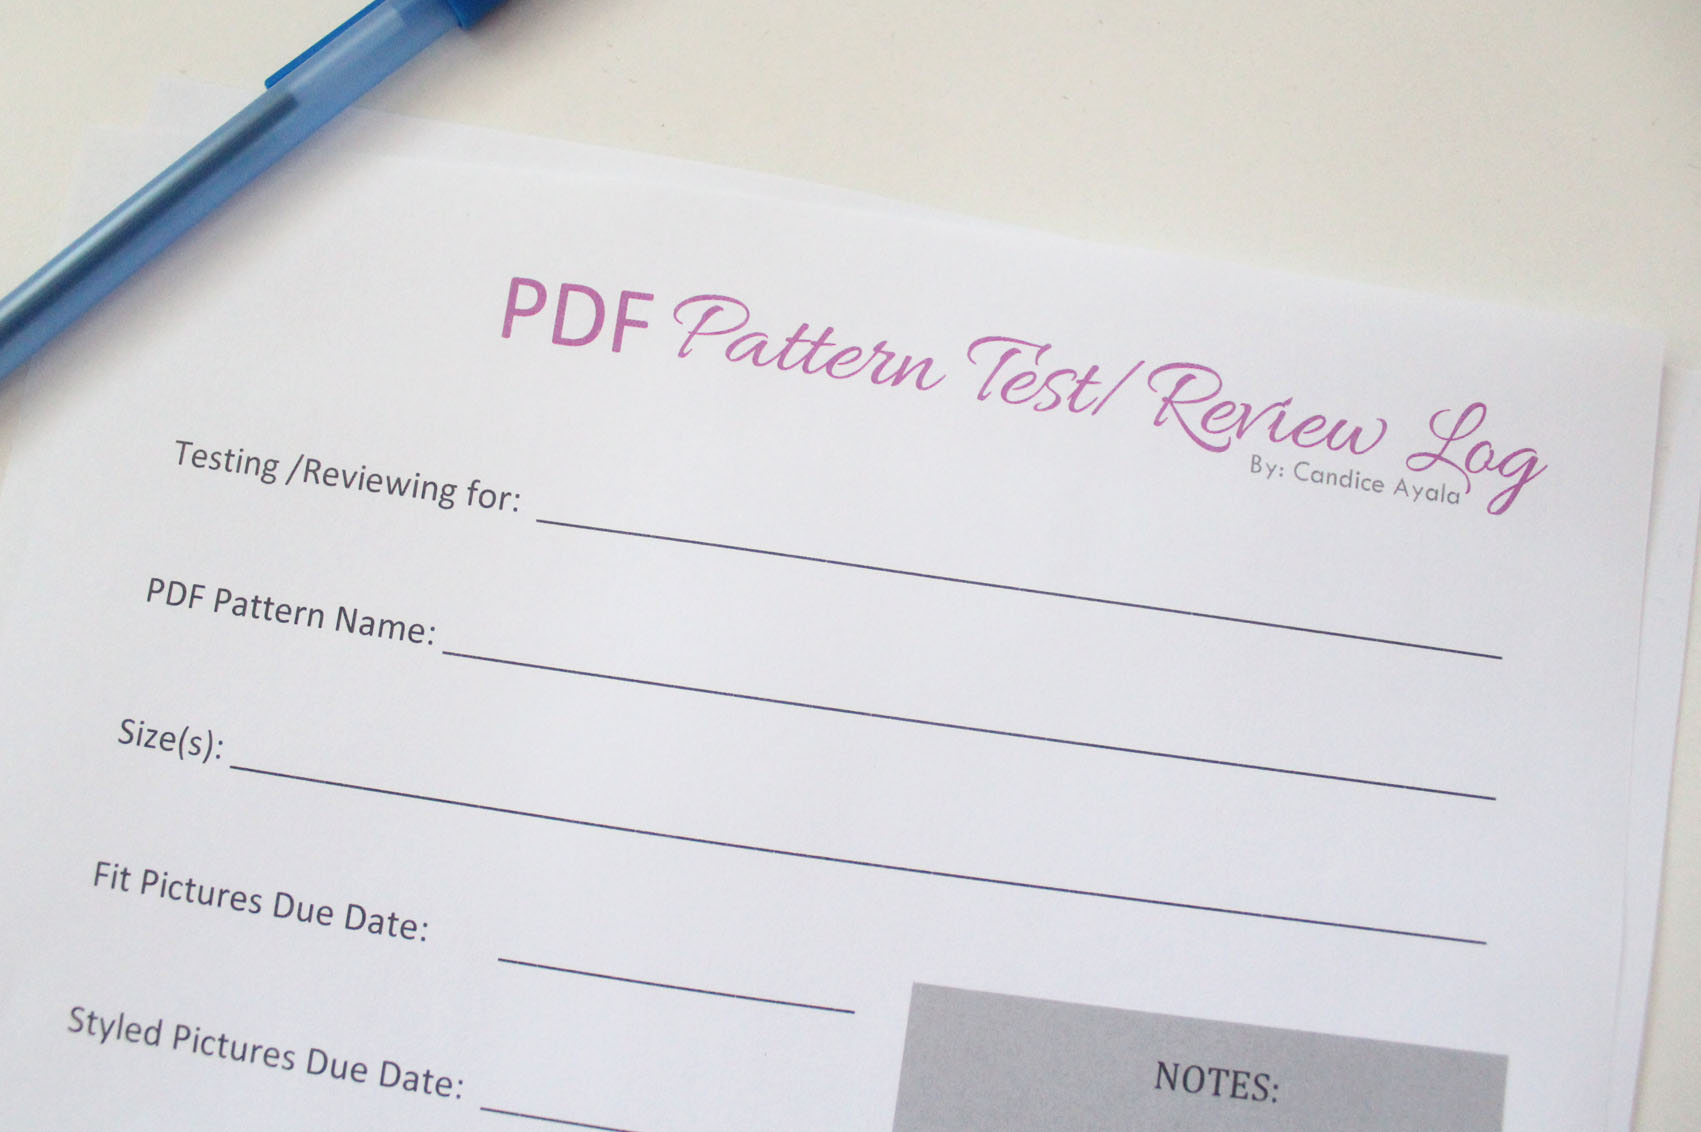 PDF Pattern Test/Review Log Sheet